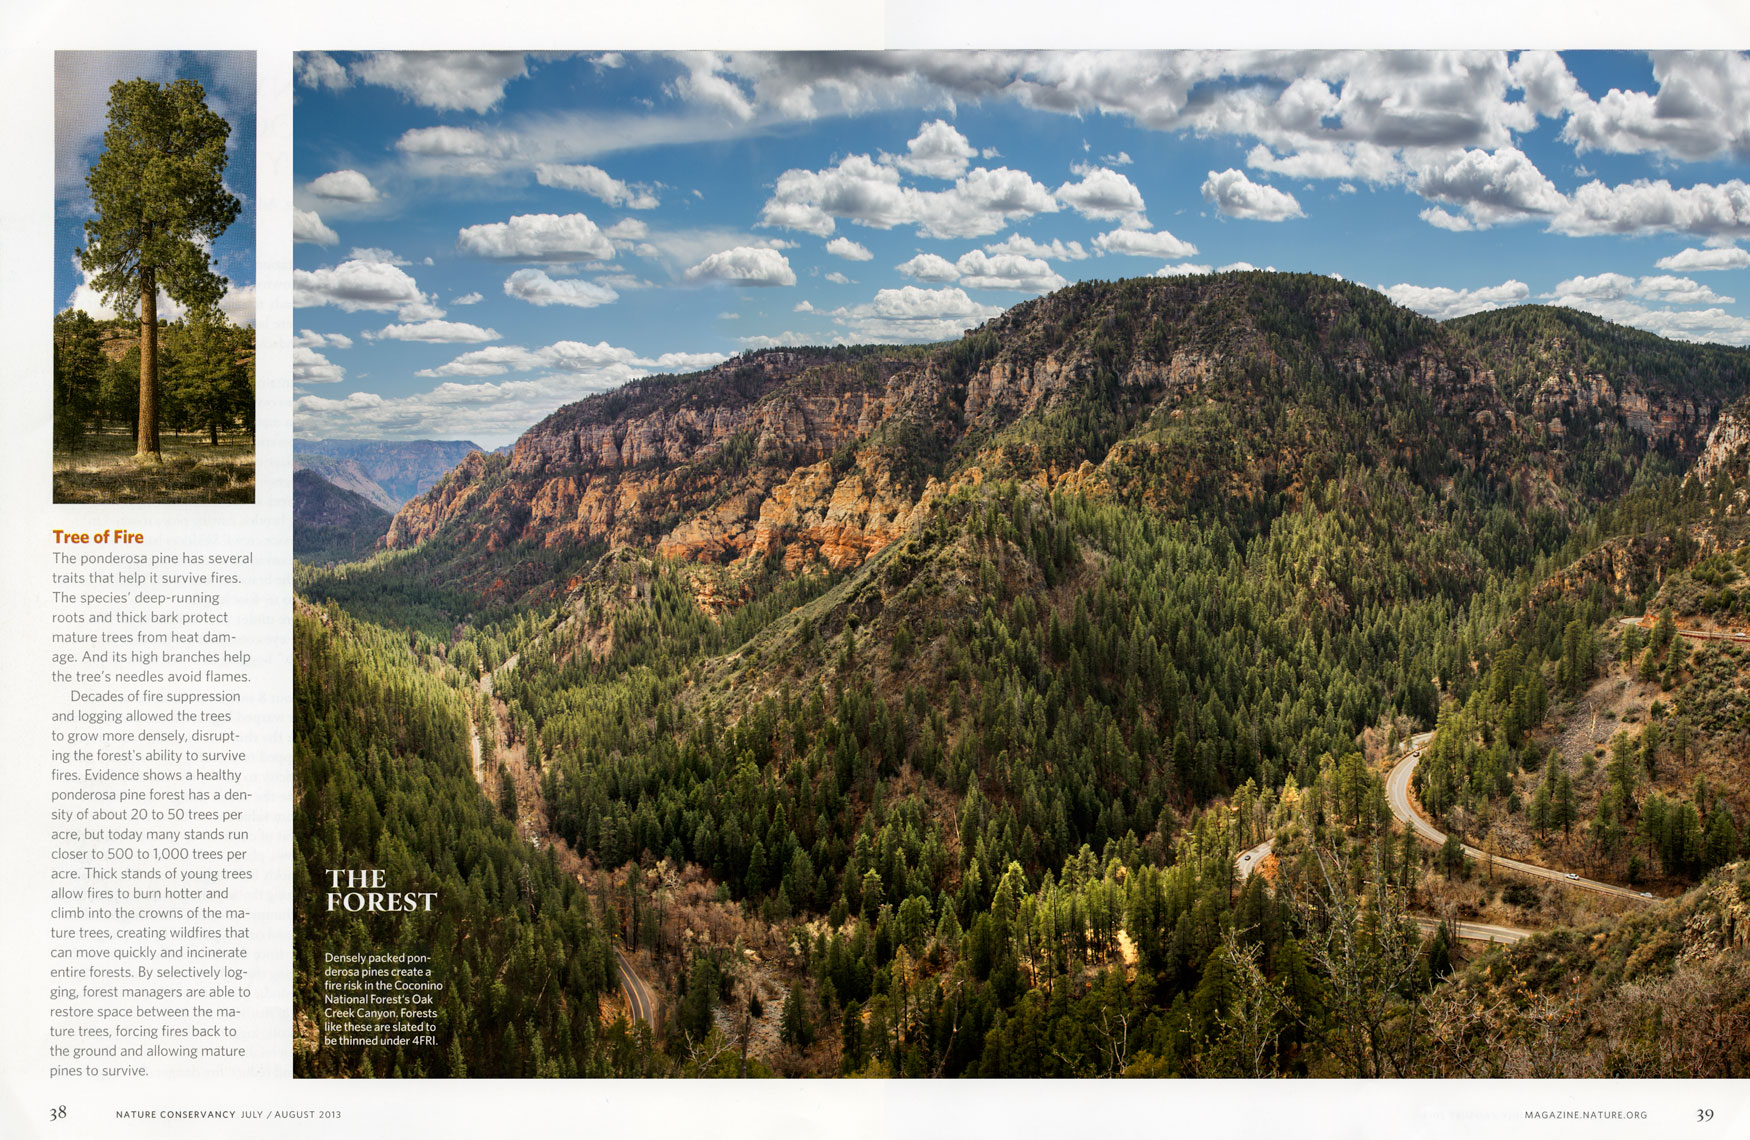 Nature Conservancy: The Forrest. SPREAD 4: Coconino National Forrest